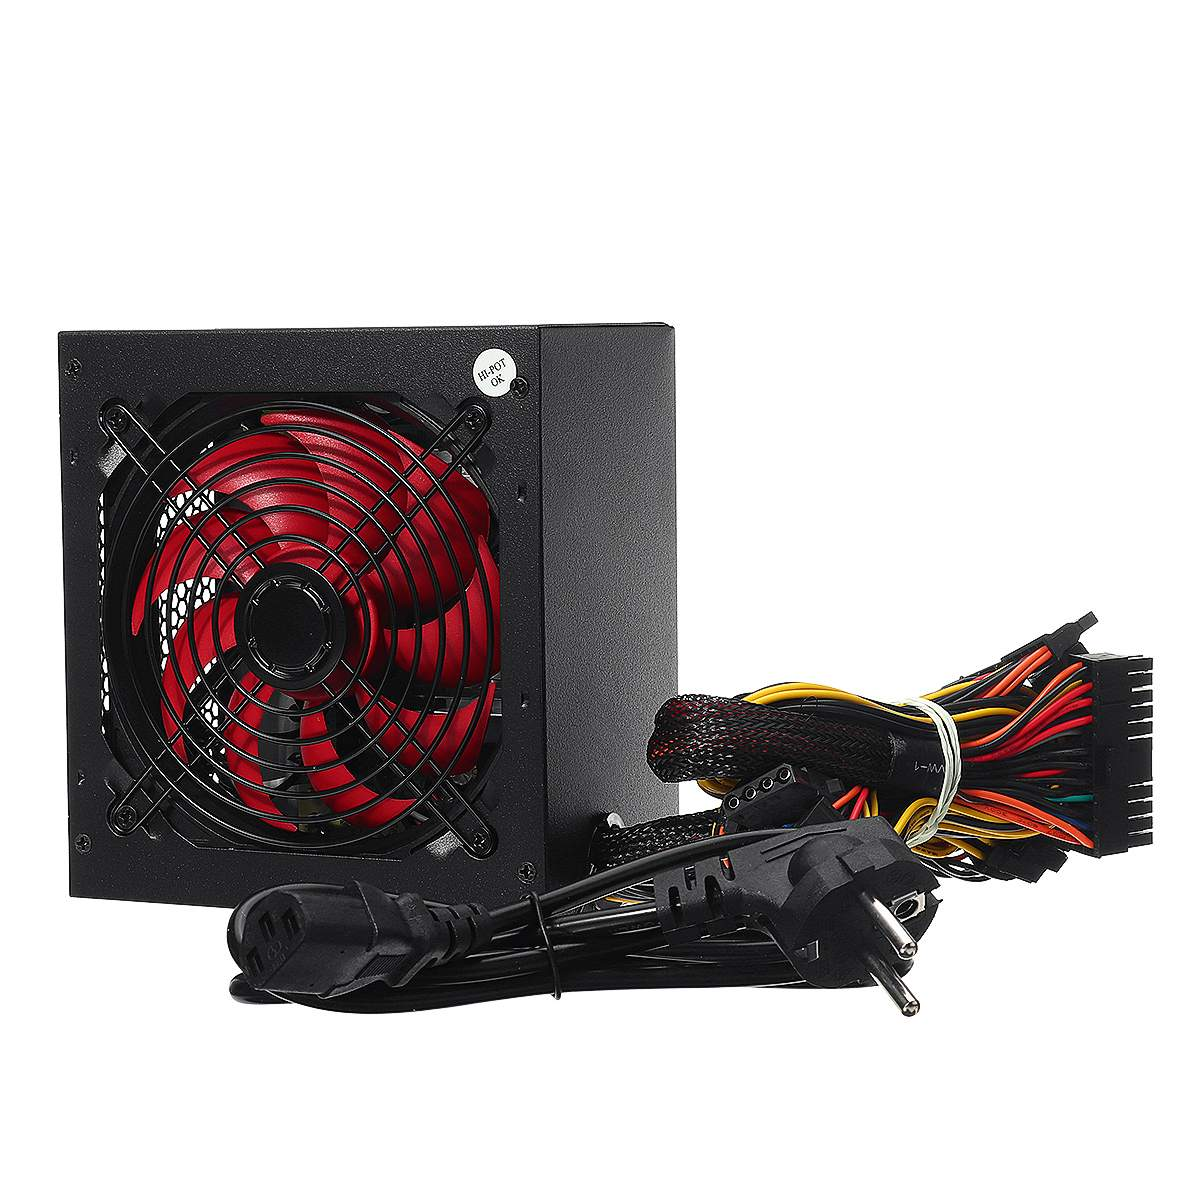 ATX 20/24pin 12V PC Computer SATA Gaming PC Power Supply 650W Power Supply Passive PFC Silent Fan